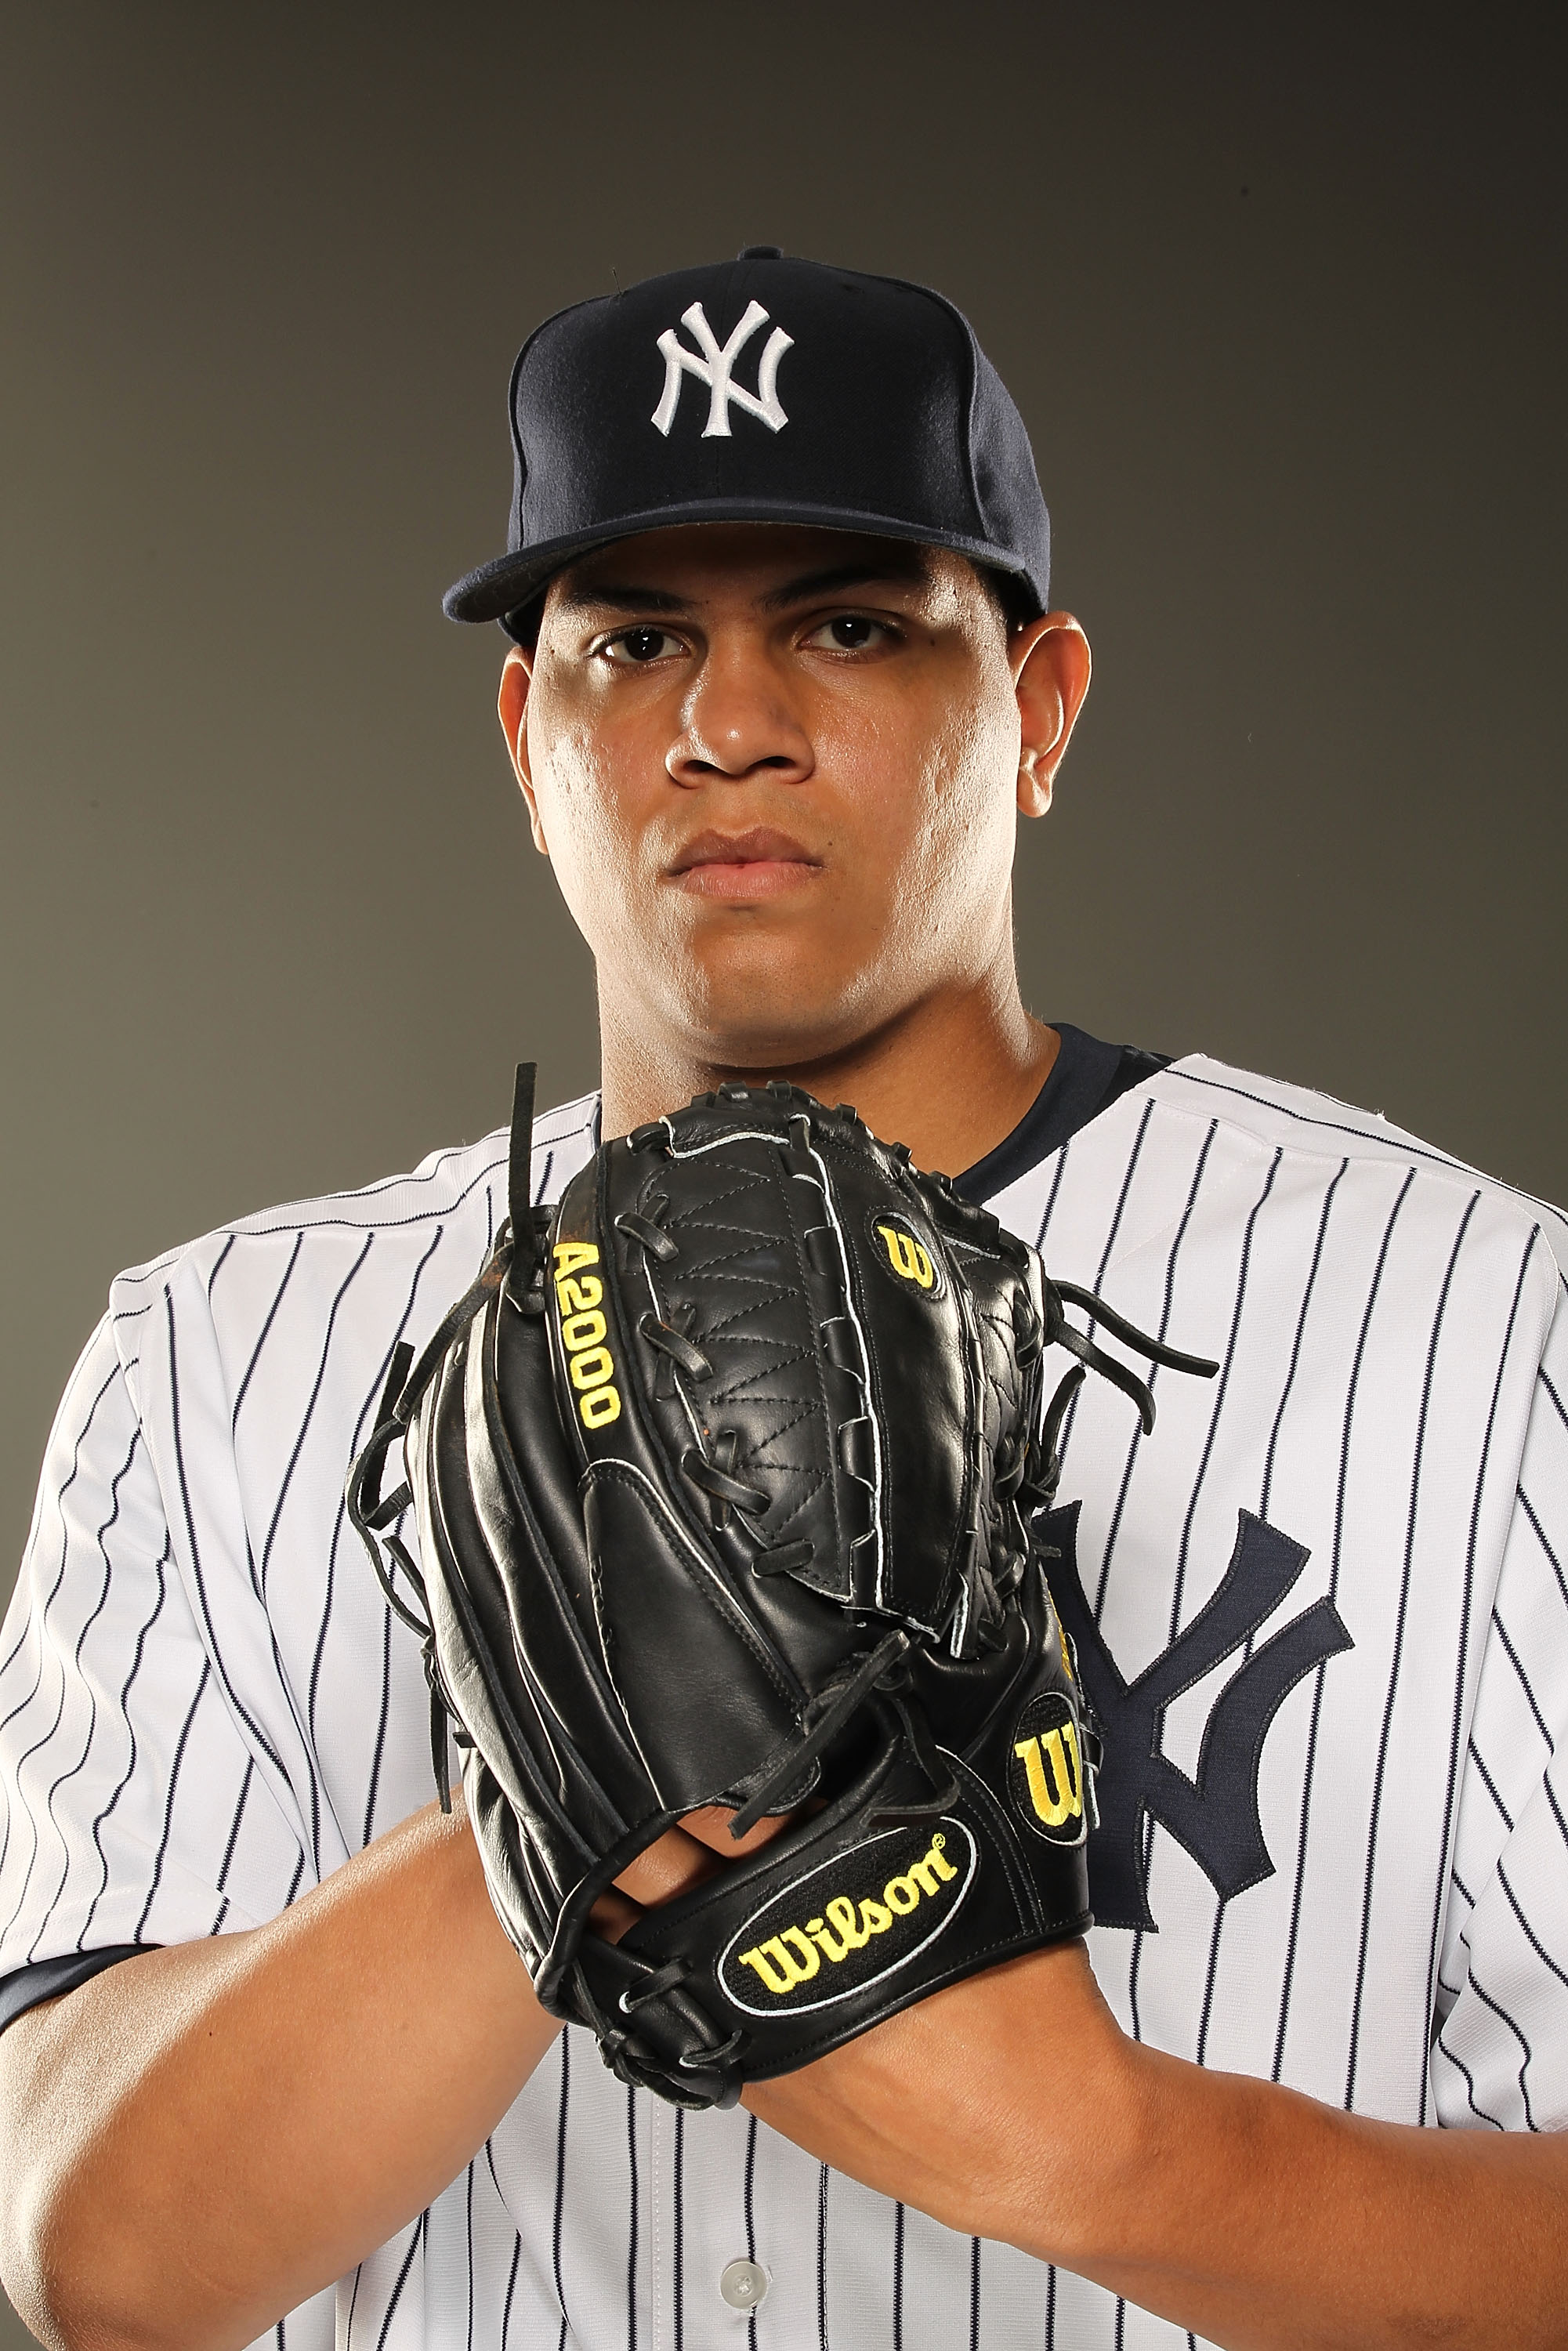 TAMPA, FL - FEBRUARY 23:  Dellin Betances #72 of the New York Yankees poses for a portrait on Photo Day at George M. Steinbrenner Field on February 23, 2011 in Tampa, Florida.  (Photo by Al Bello/Getty Images)